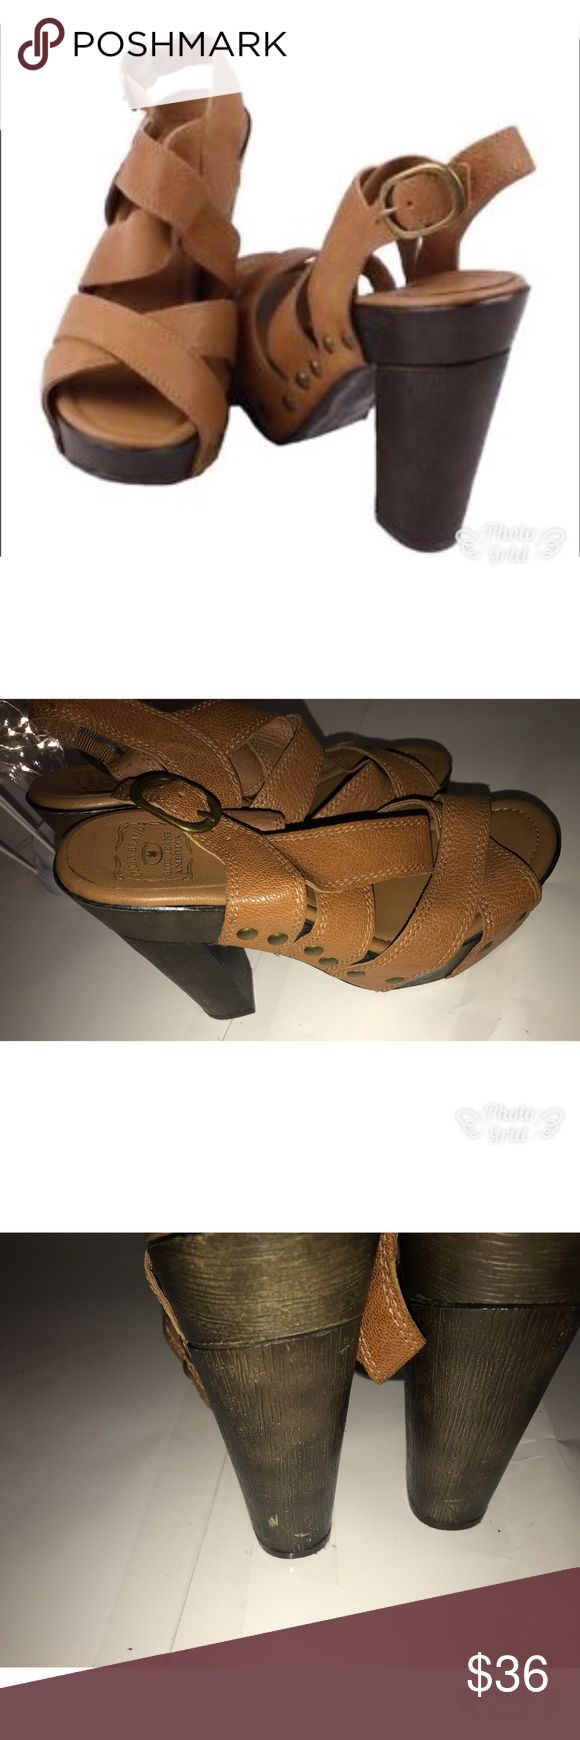 Lucky Brand 8 Tessa Platform Brown  Strappy 👡 New  Brand: lucky Brand Style: high Heels, buckle and stud Size: 8 Color: brown Material: leather, faux wood heels 1.5 inches in platforms and 3.5 in heels  Condition: Pre-Owned with some scuffing and shelf wear throughout the heels 👠 , see pictures. Lucky Brand Shoes Platforms